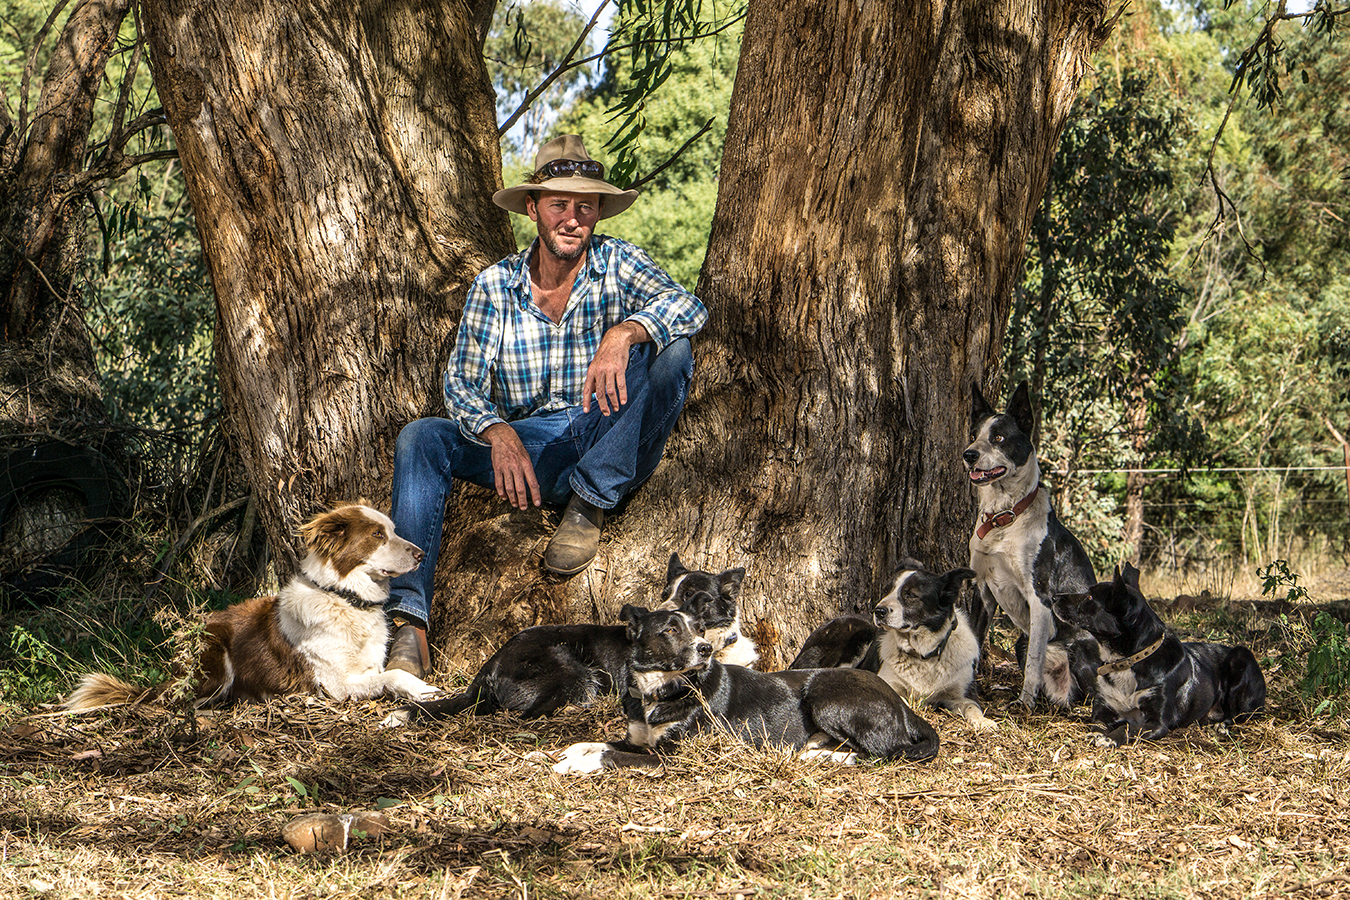 Backtrack Founder Bernie Shakeshaft leans on a large tree surrounded by some of the dogs